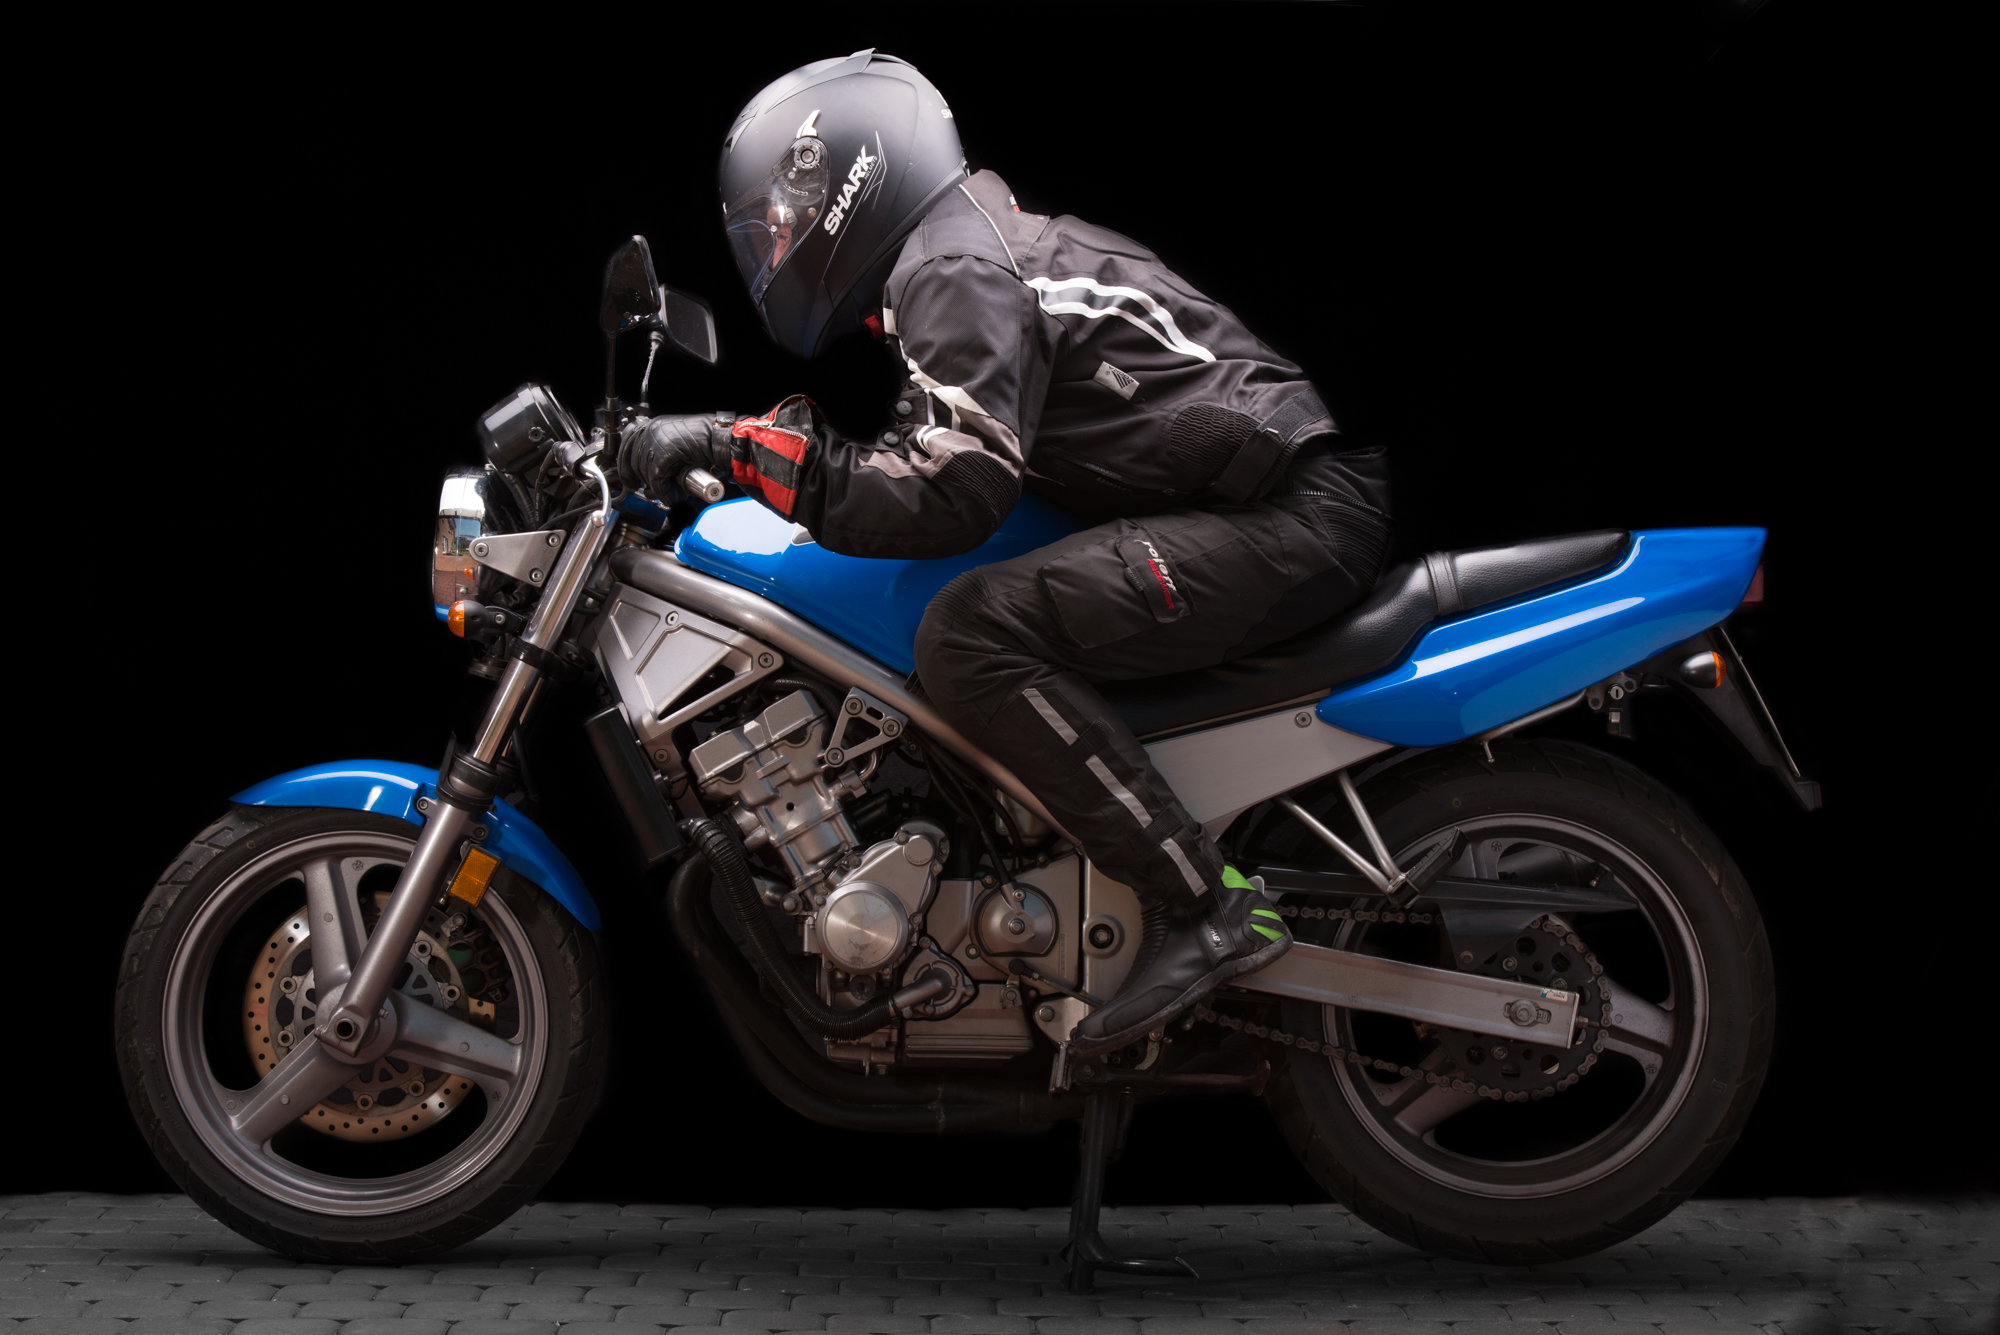 Studio Shoot, Part 1: Honda CB1 400